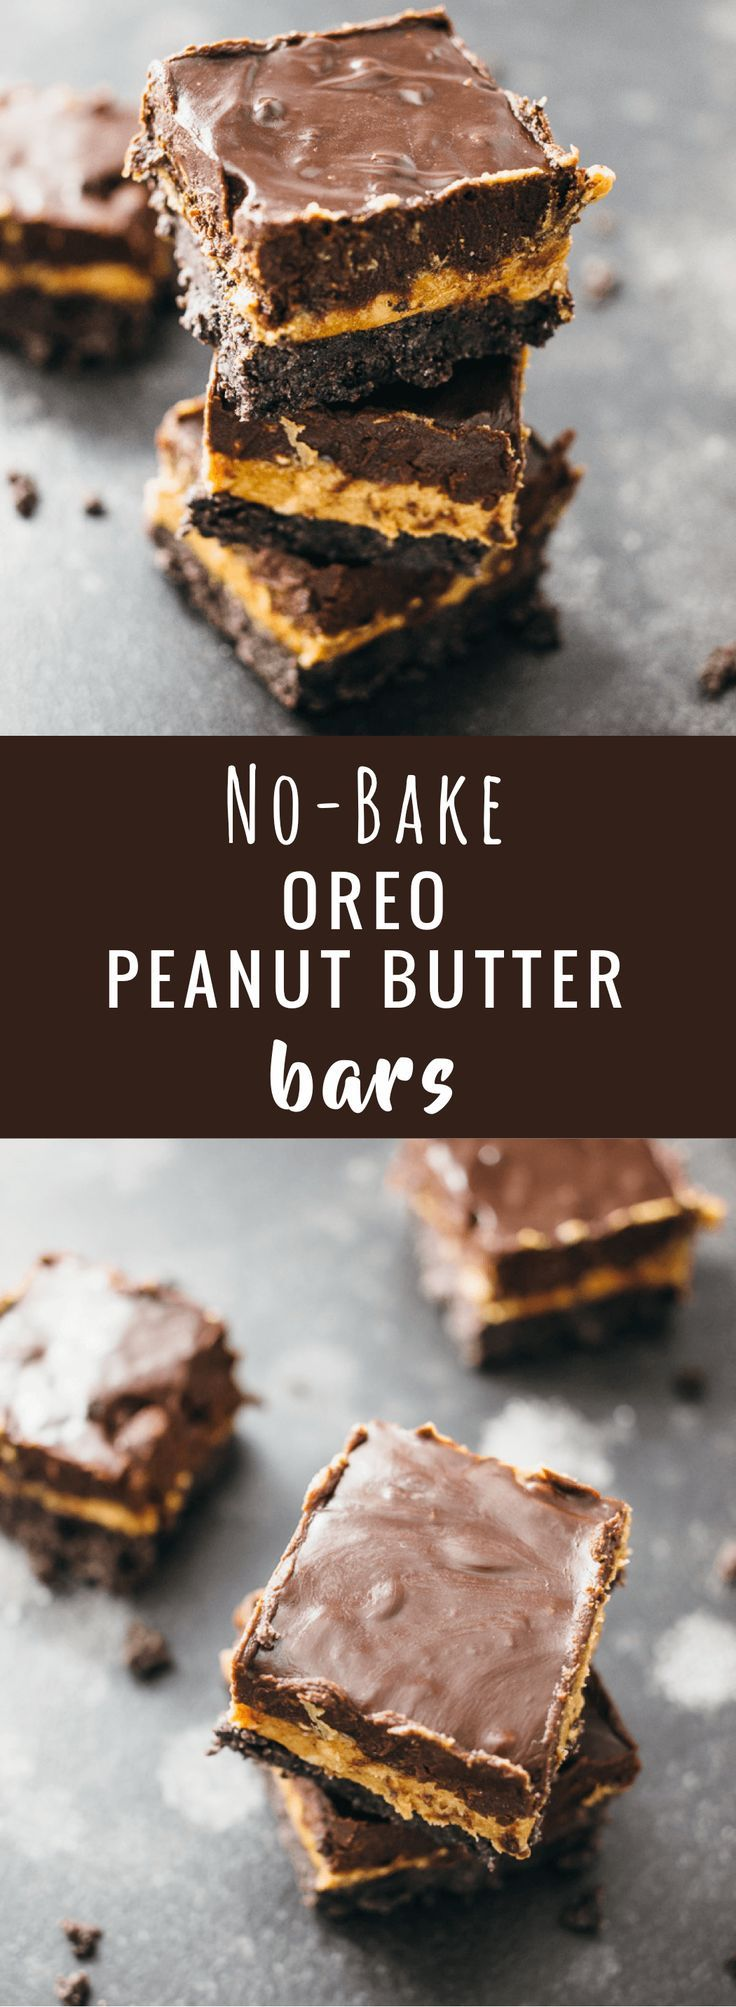 These no-bake Oreo peanut butter squares have three thick layers: Oreo bottom crust, thick and creamy peanut butter middle layer, and a rich chocolate frosting top layer. The peanut butter is the star of this show, for sure; there's an entire pound of peanut butter used! Both the chocolate and peanut butter layers are thick and rich, and the Oreo crust is crumbly but holds together. These bars are the perfect dessert recipe! - savorytooth.com